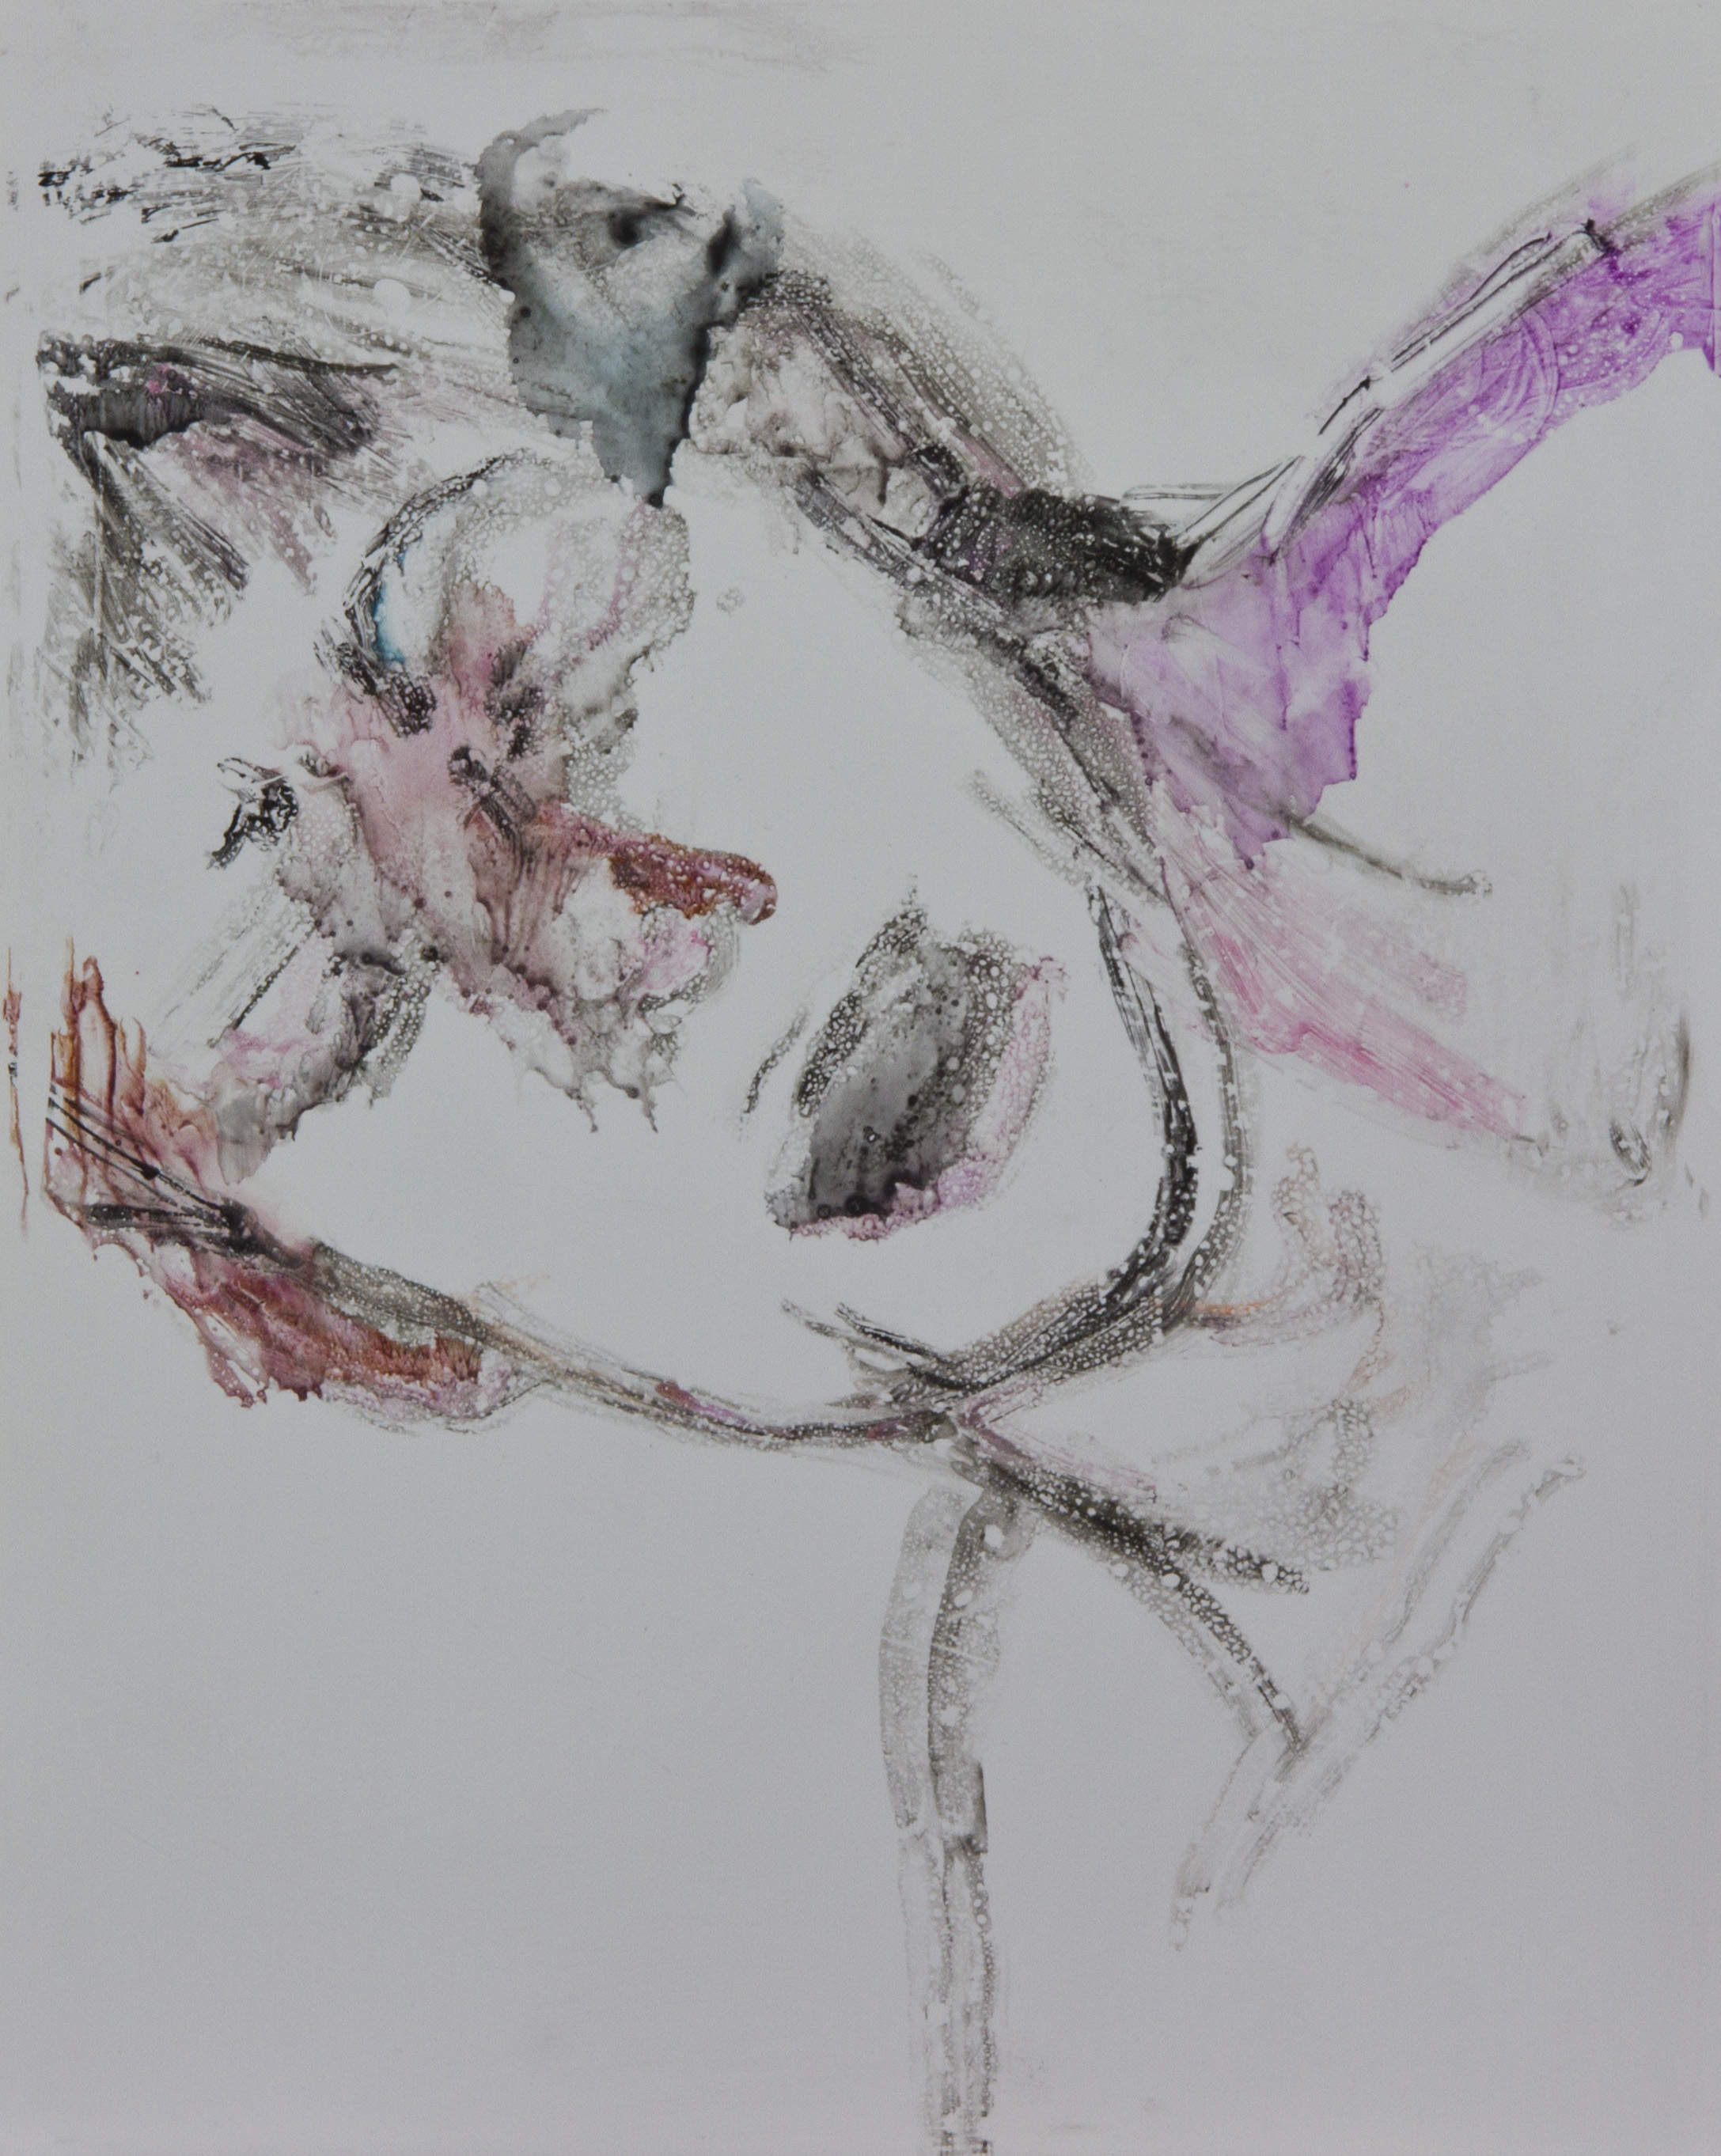 Acts 35, 2010, watercolor monotype on polypropylene, 11x14 inches